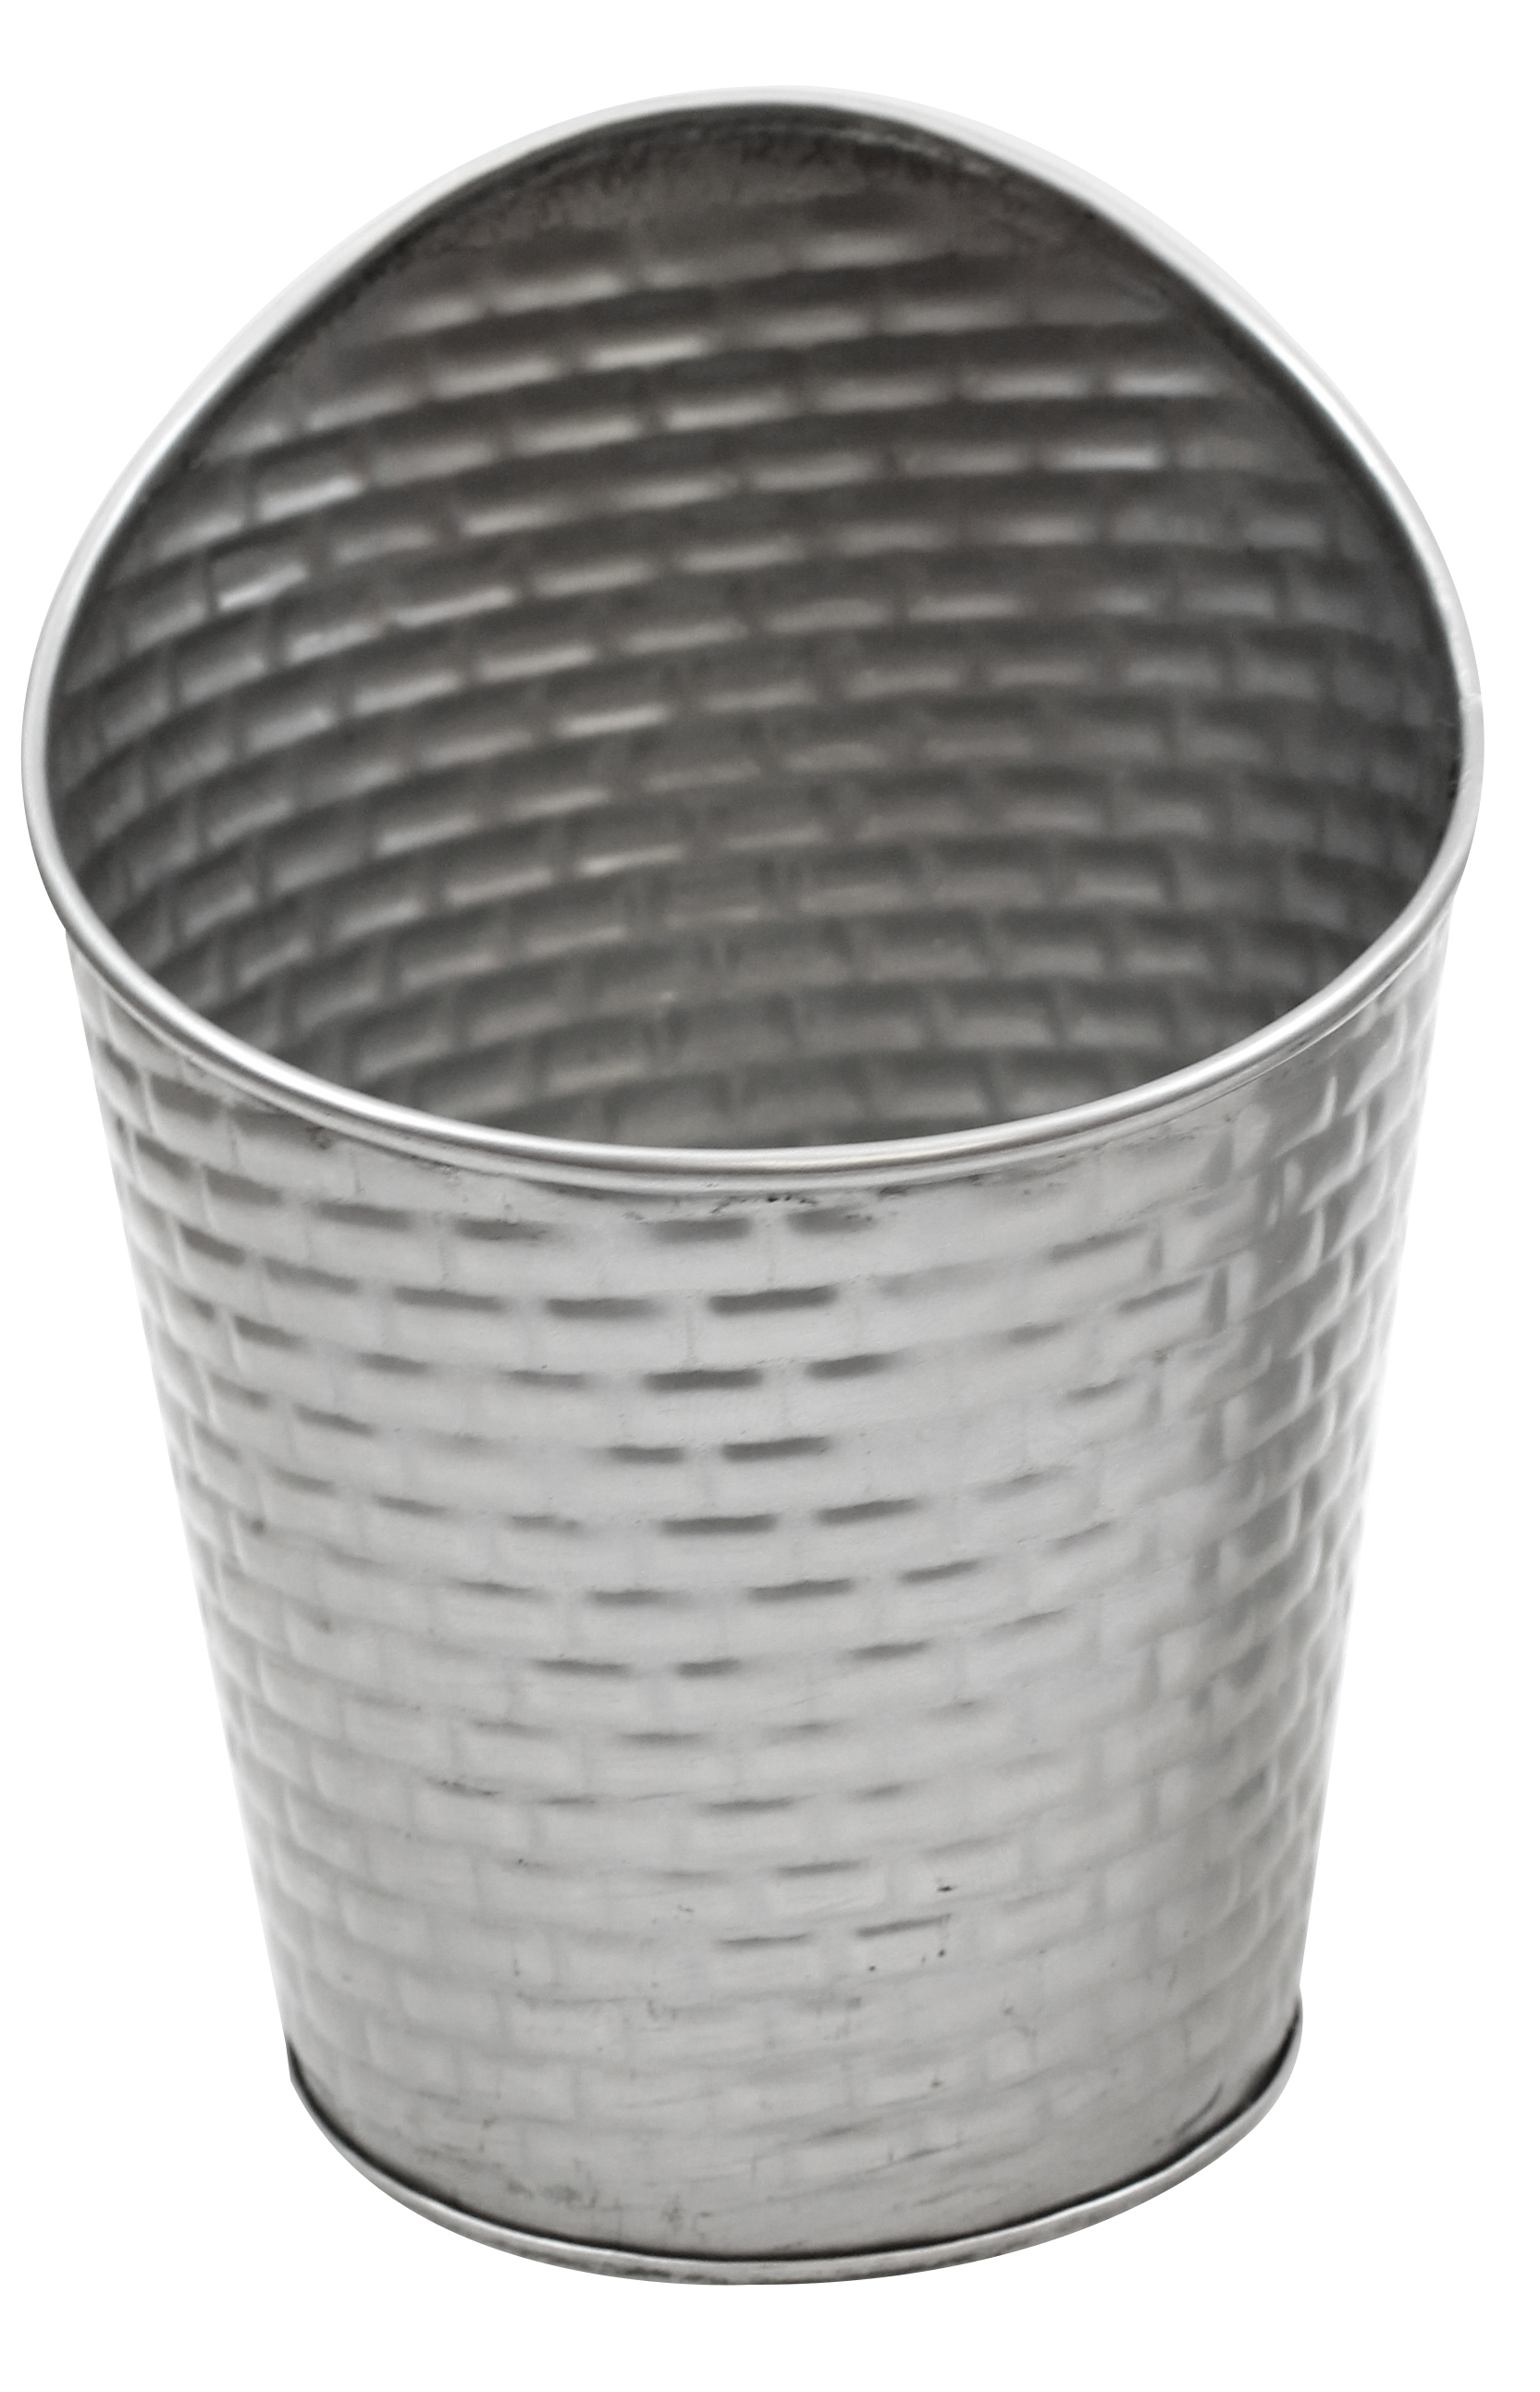 TableCraft Products GTSS375 stainless steel brickhouse col